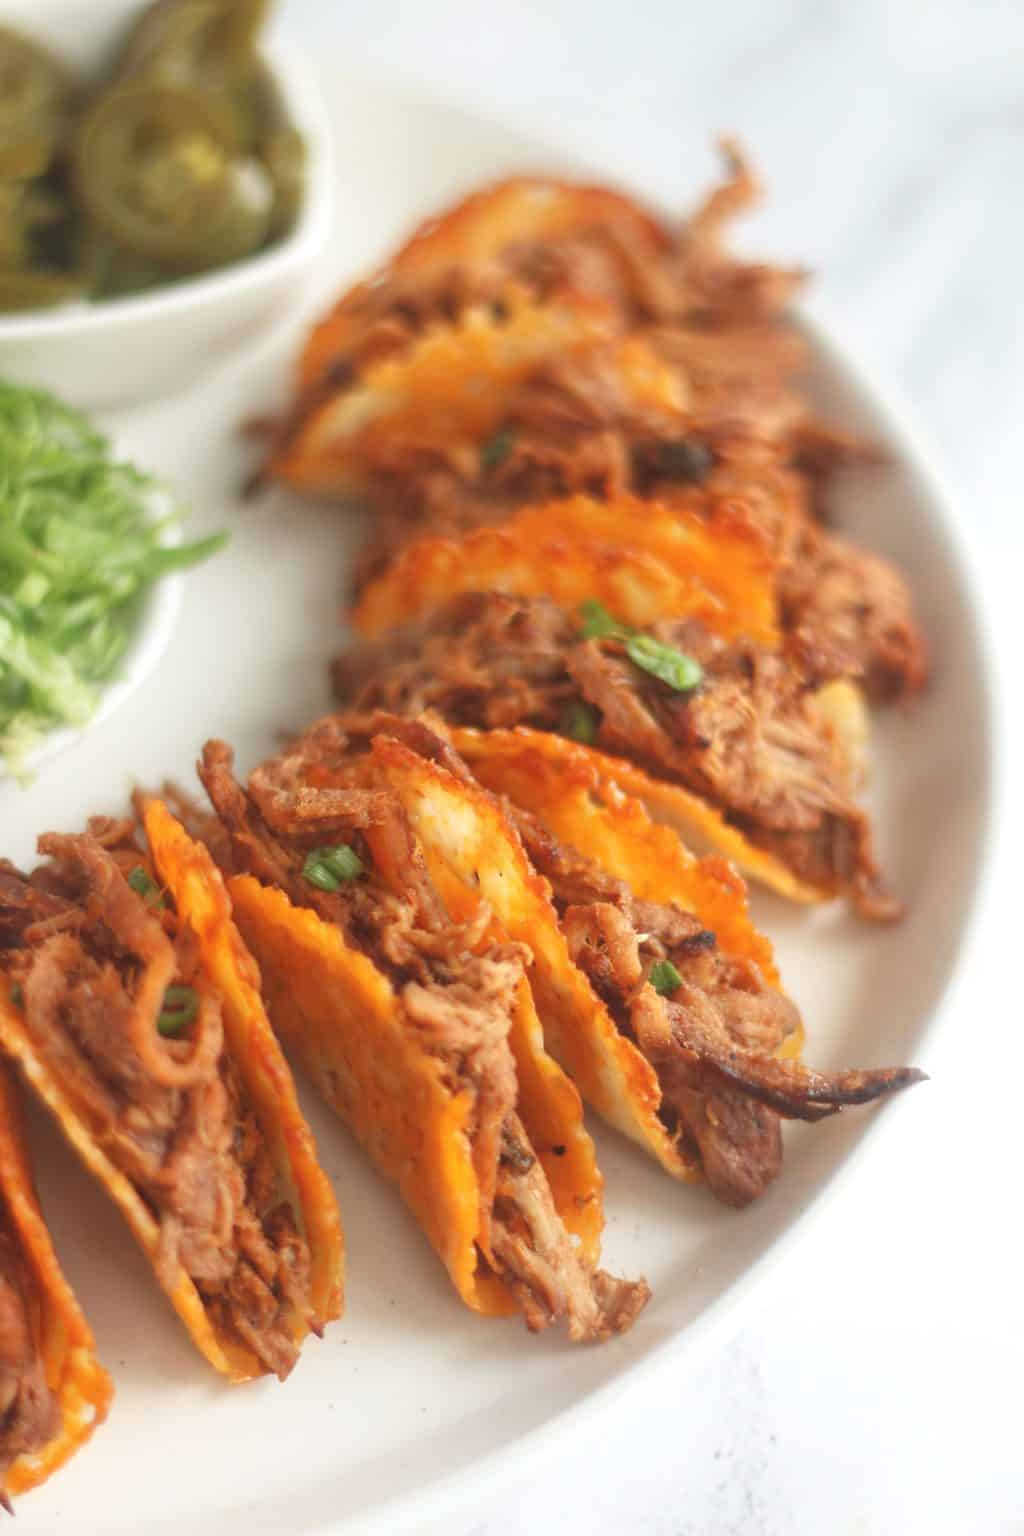 Keto Pulled Pork Tacos